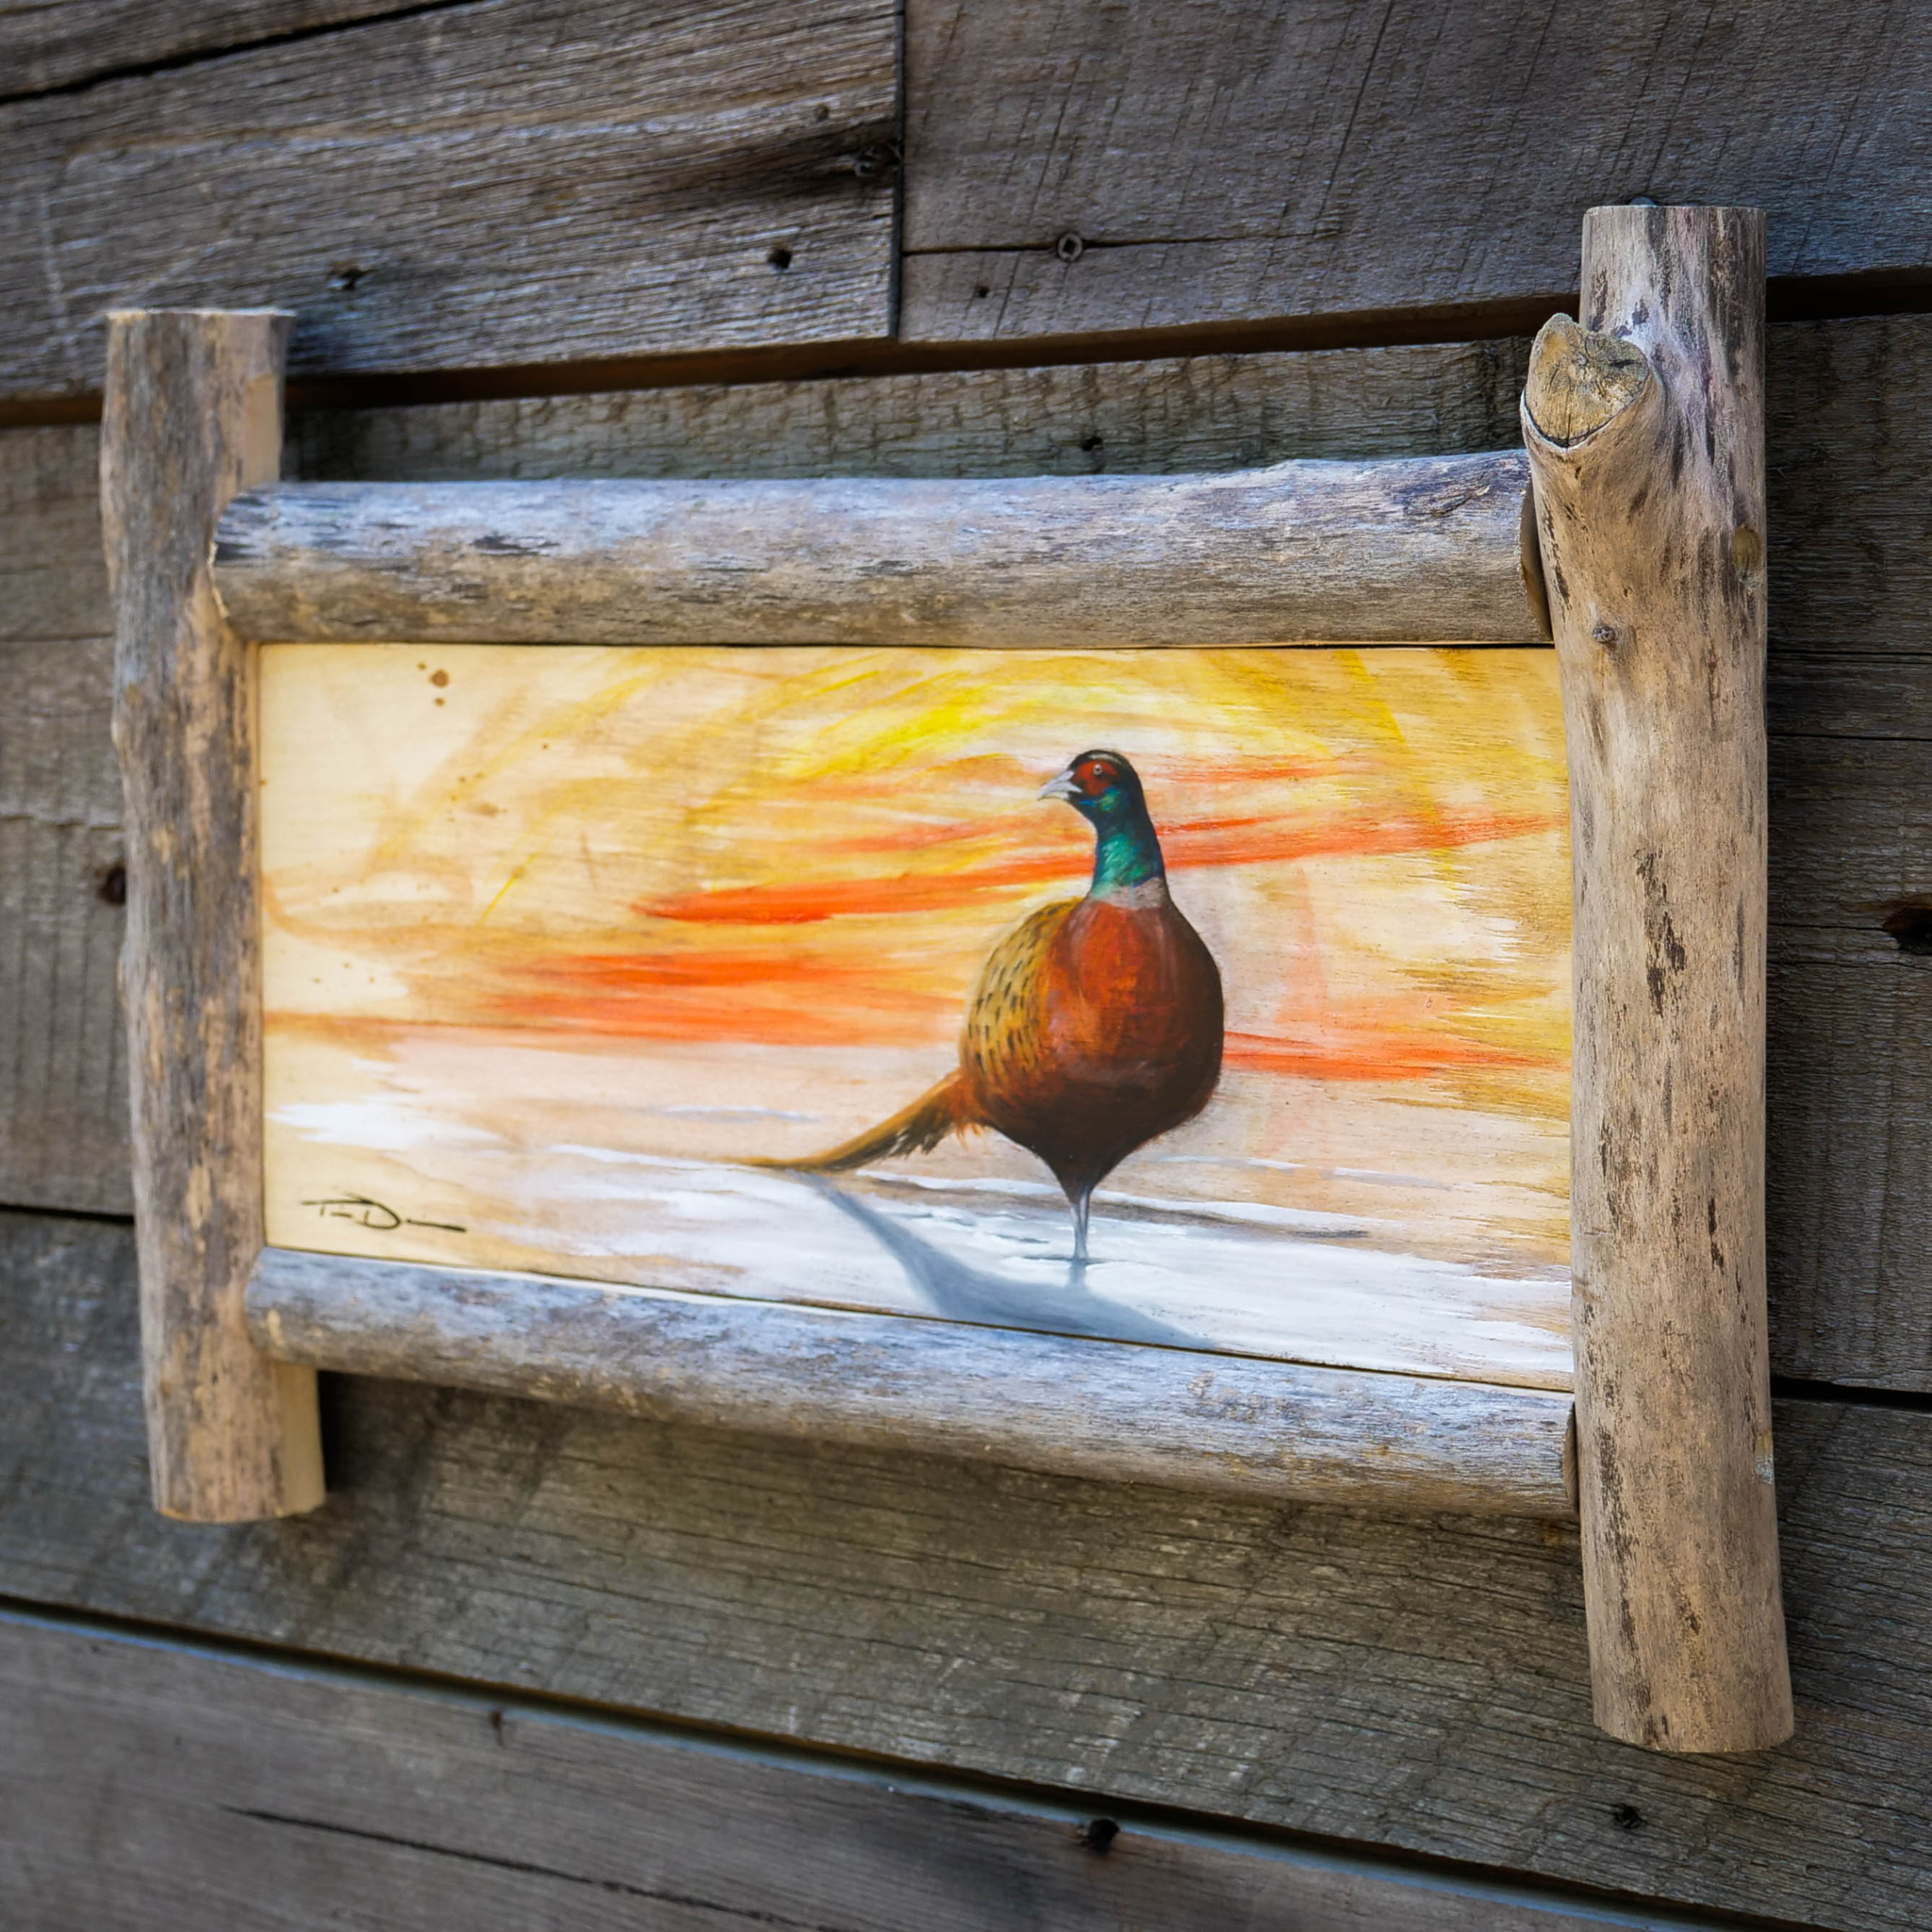 Pierre Pheasant - Original oil painting by wildlife artist Timothy Davison of the Davison Art Company featuring a ringneck pheasant standing in the snow at sunset. This colorful painting appears to come off the surface, revealing the wood grain beneath. Framed with a custom driftwood frame. © COPYRIGHT TIMOTHY DAVISON